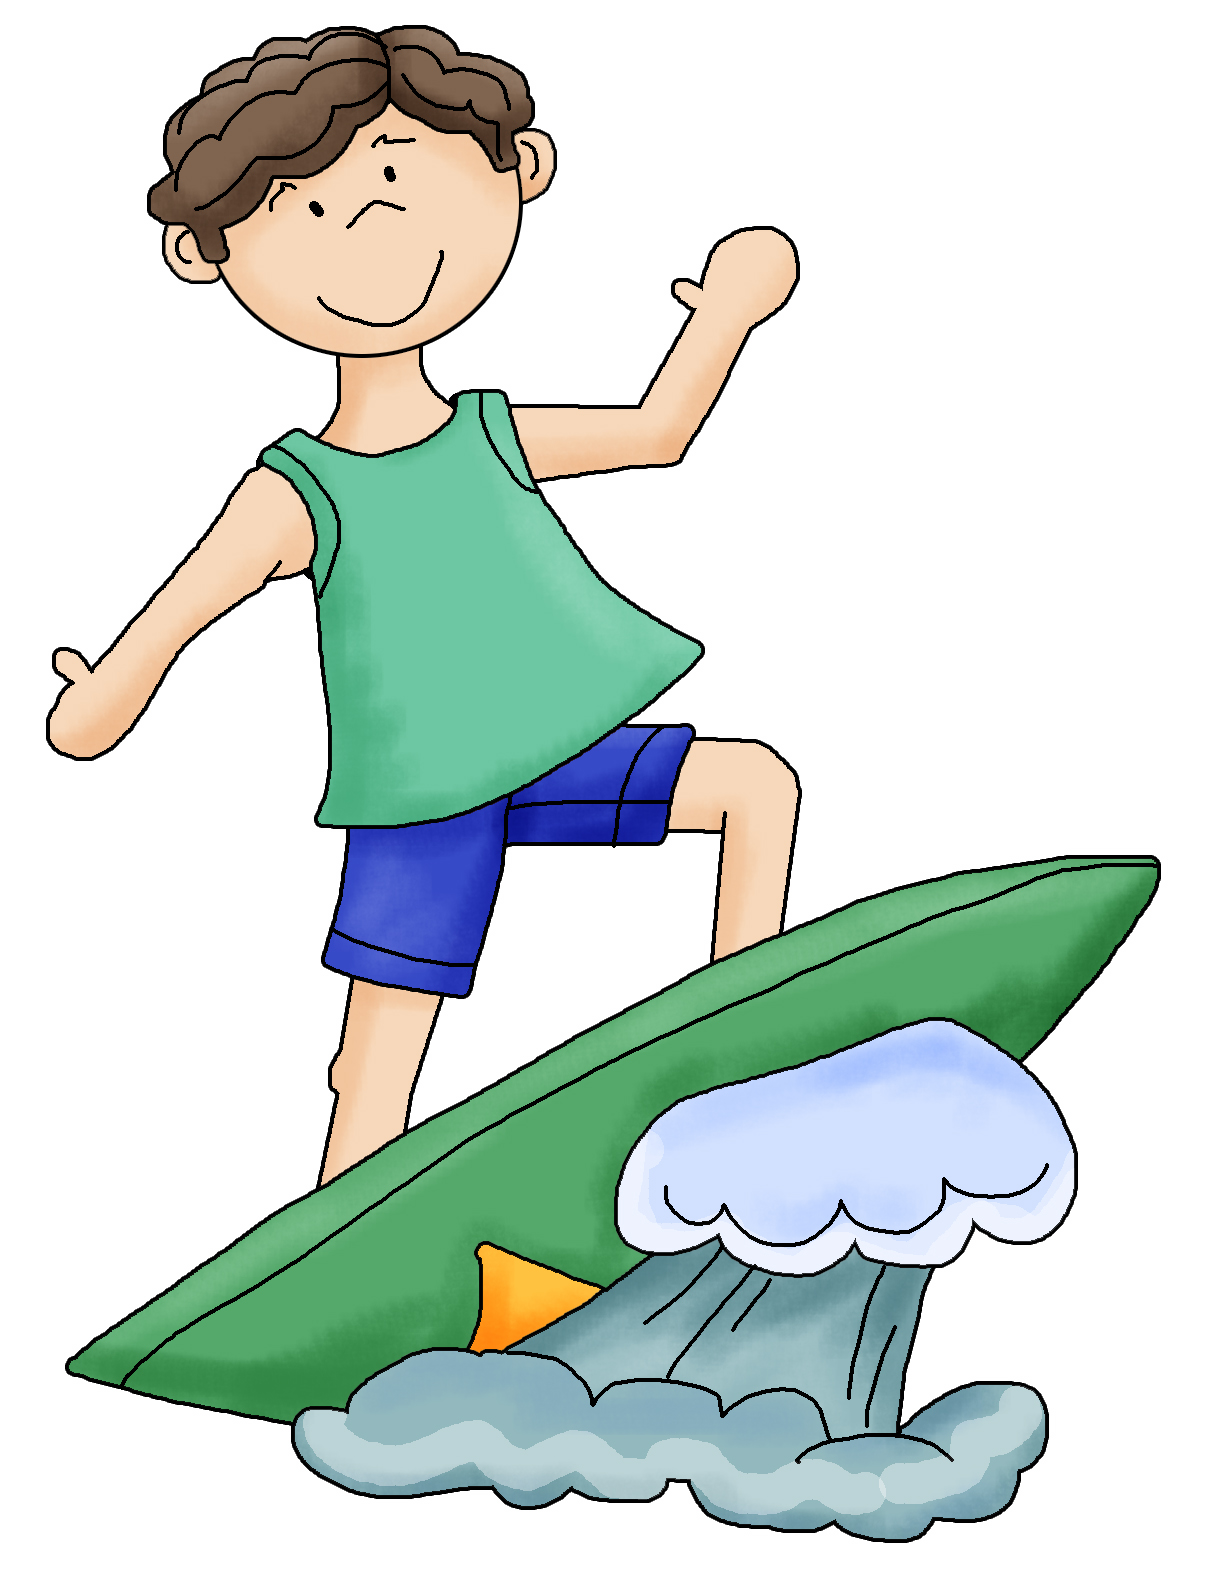 Surfer clipart transparent background. Boy